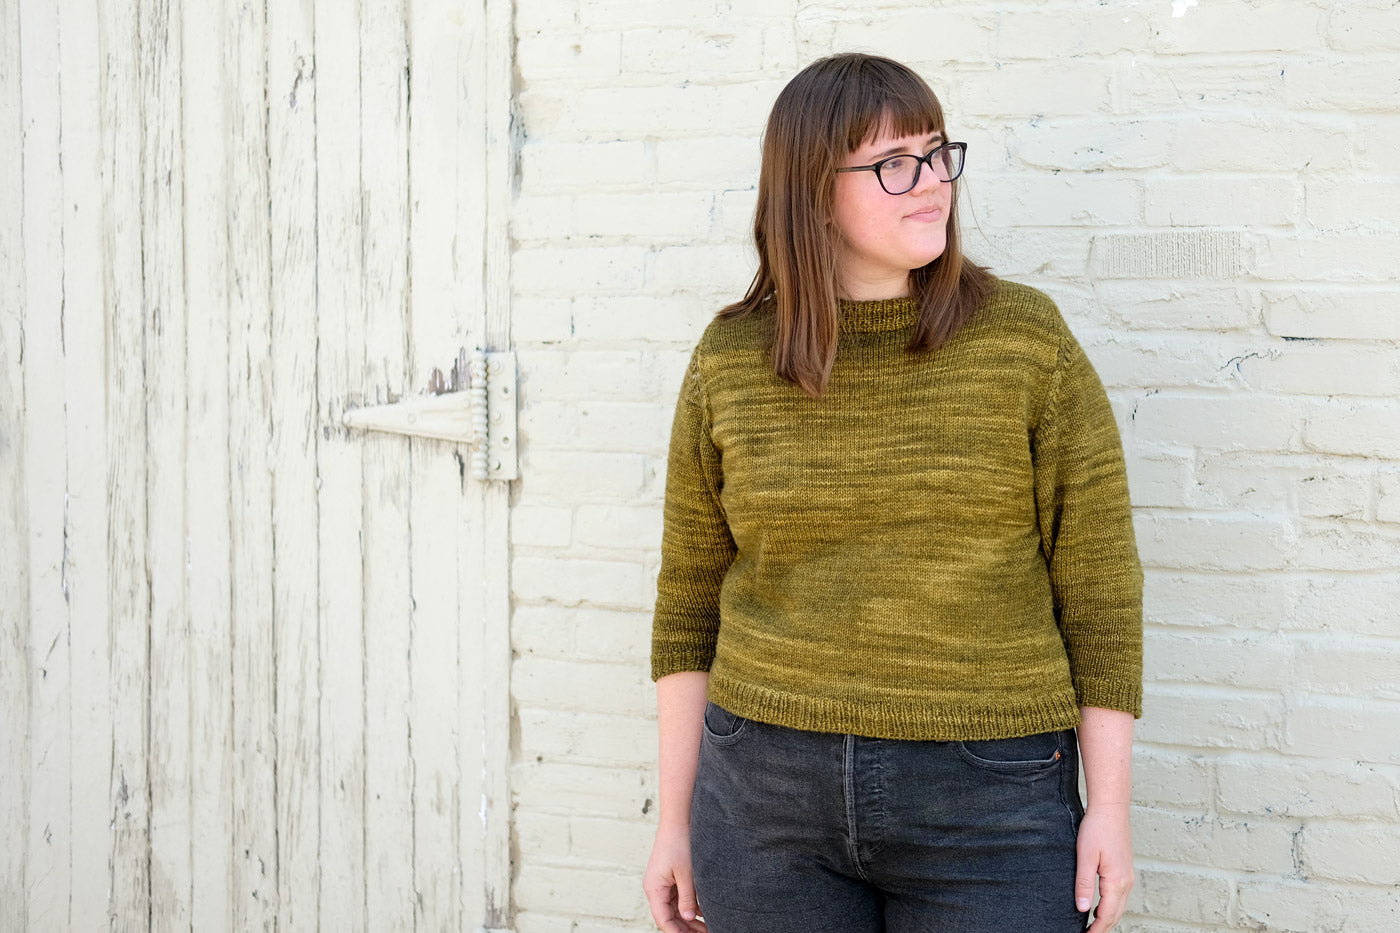 Kaylee Lockhart in her green-yellow MadelineTosh DK Cline Sweater